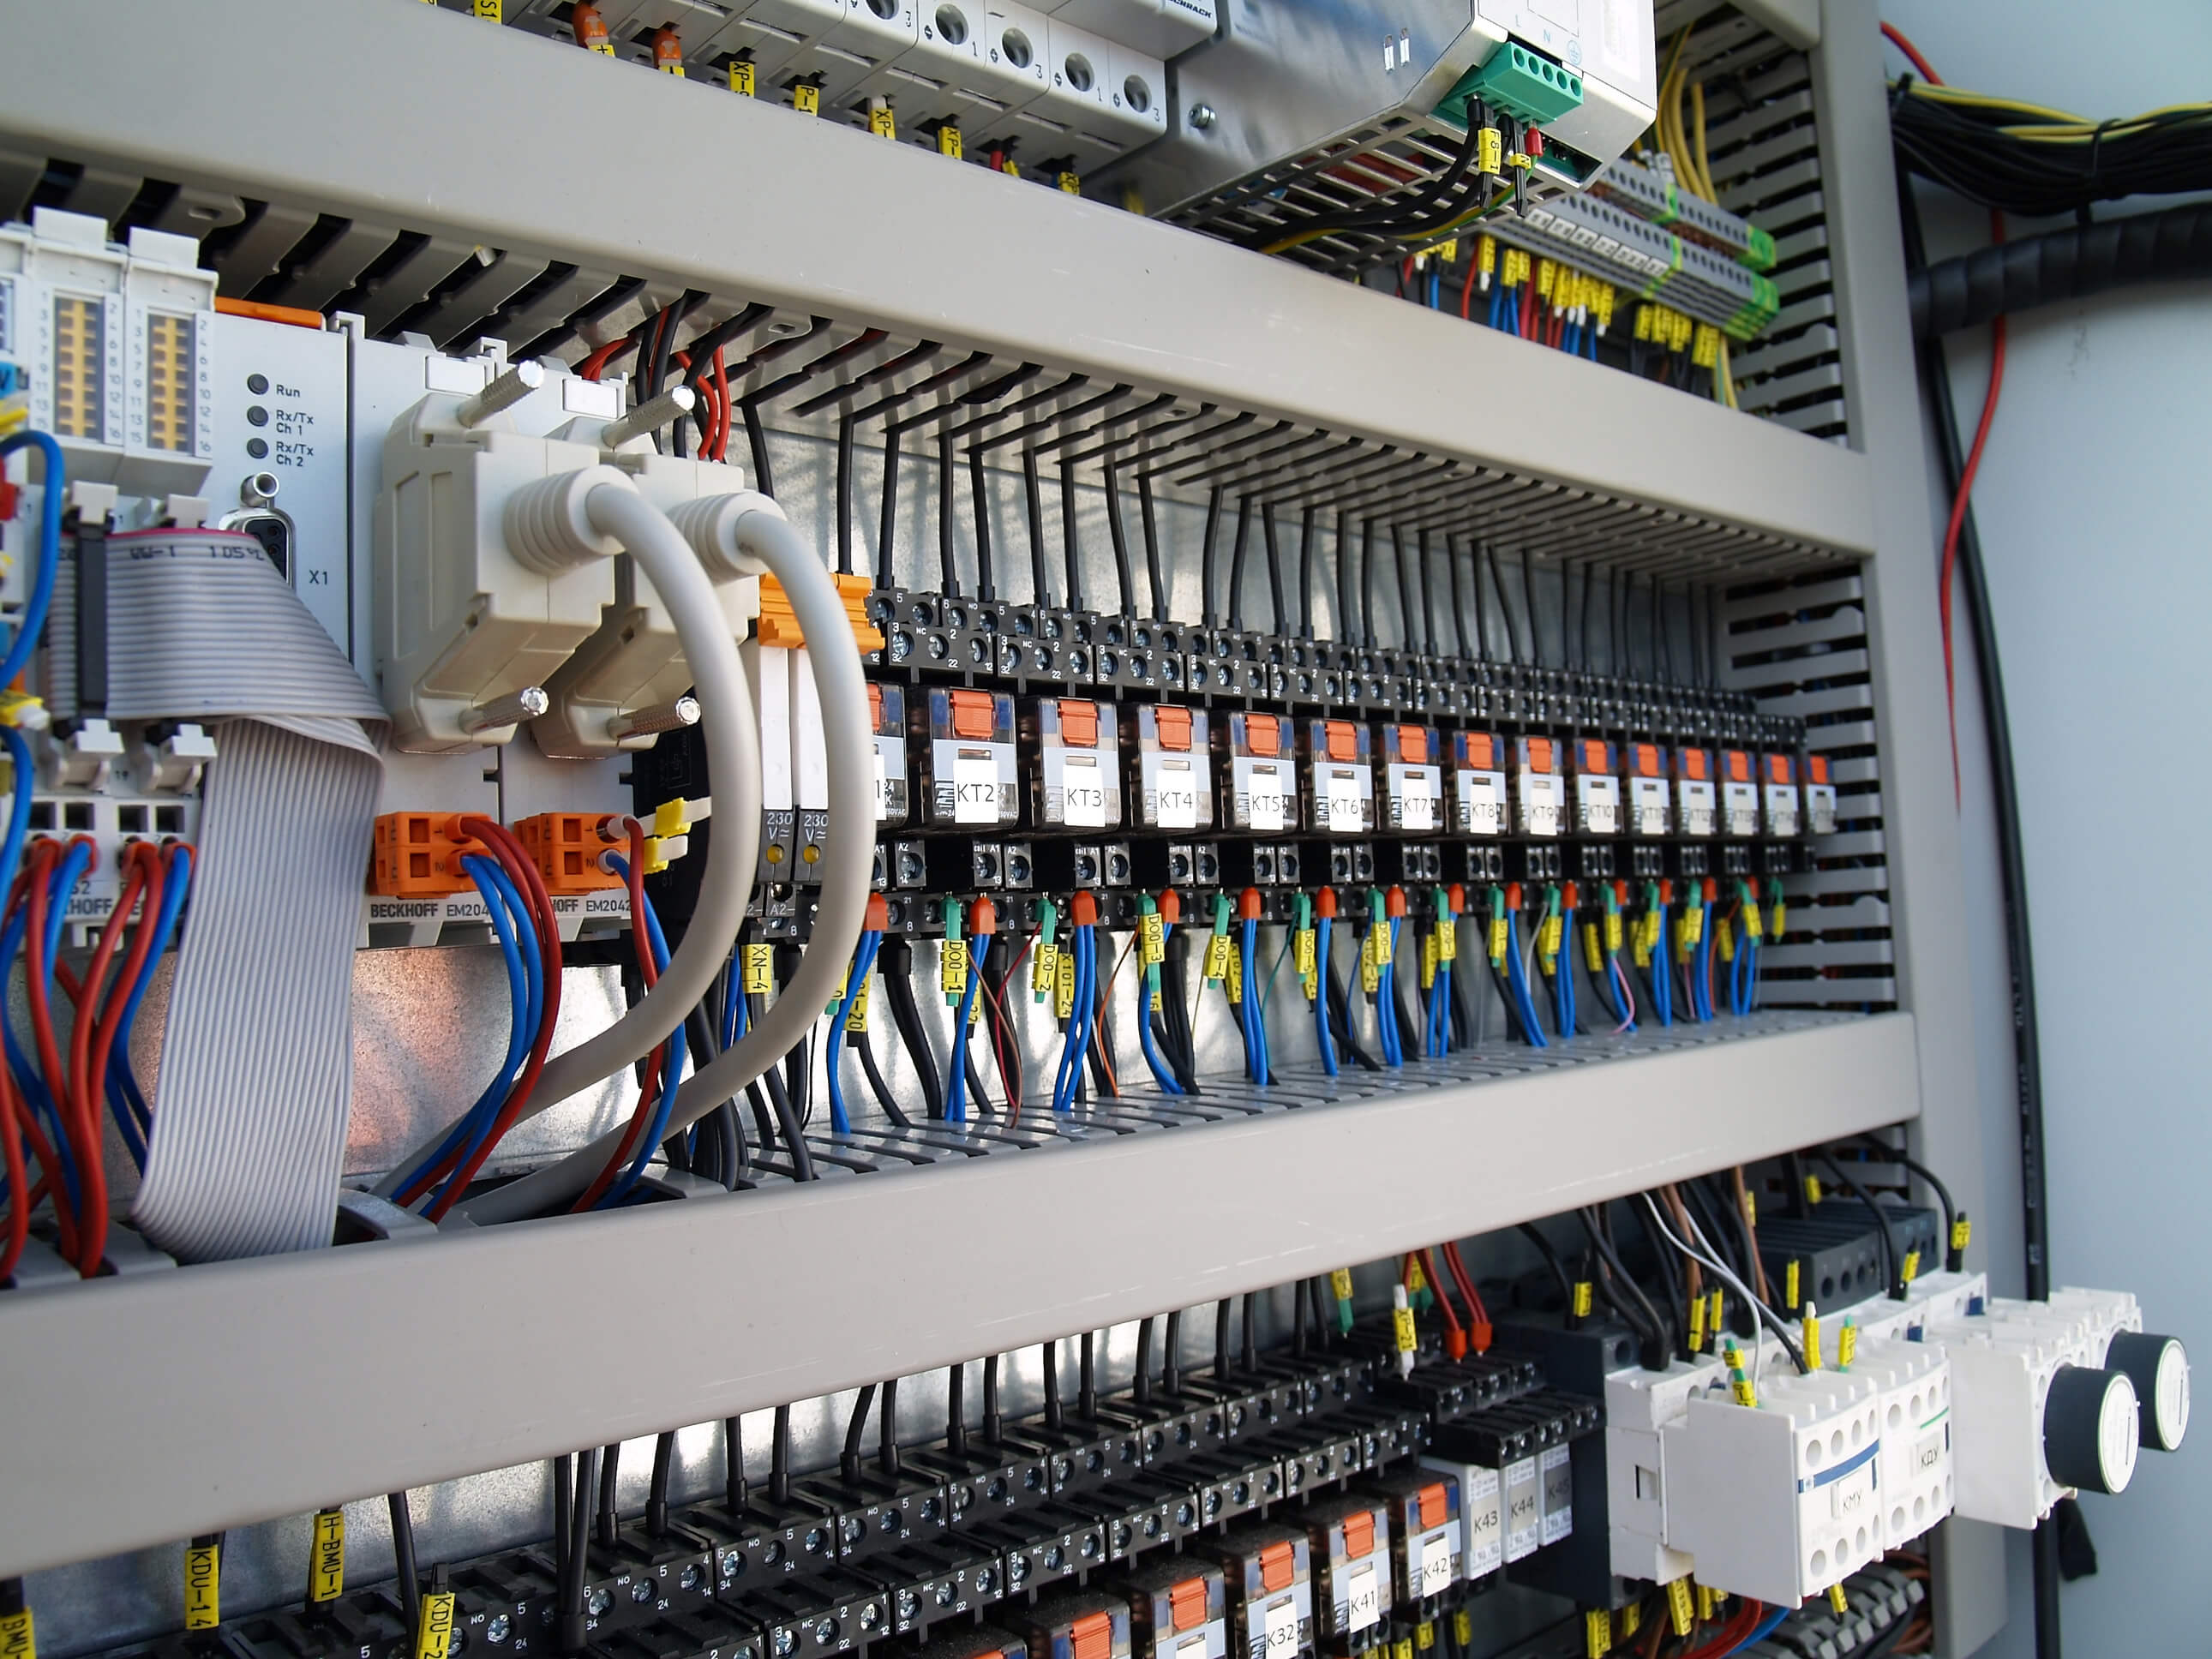 Electrician hands installing wires in electrical wall fixture - closeup